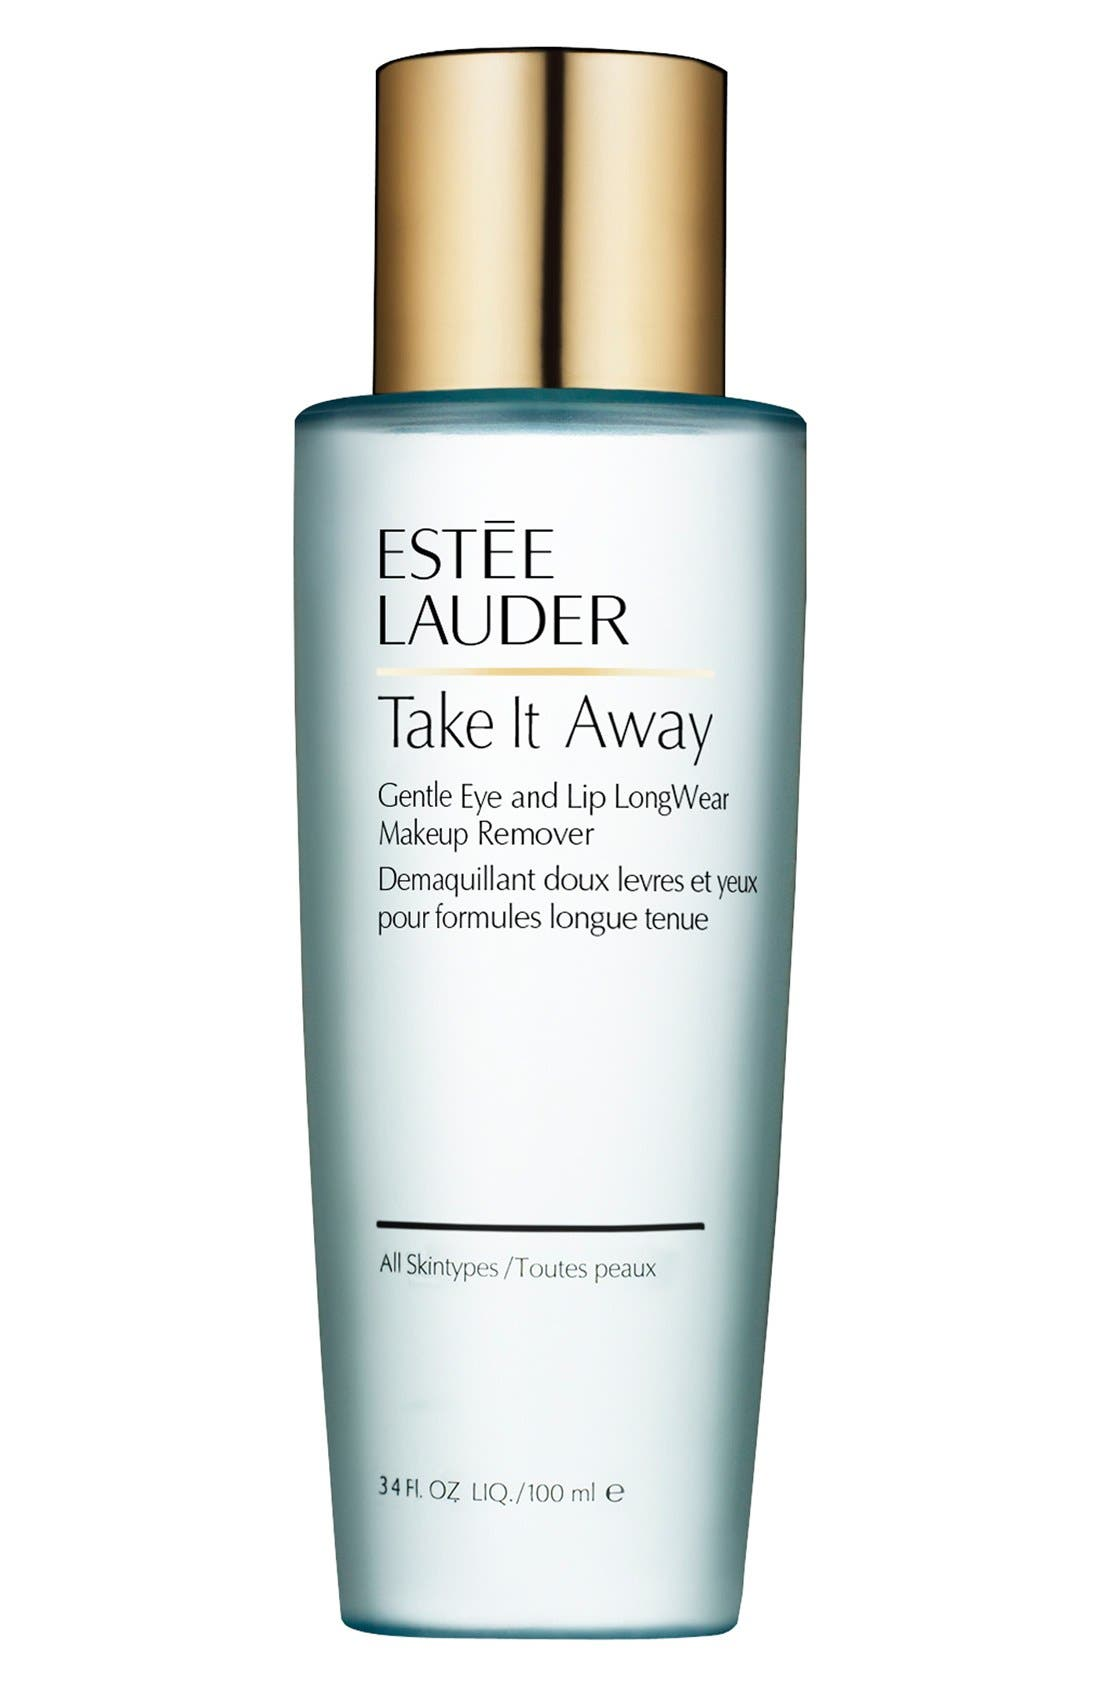 Estée Lauder Take it Away LongWear Makeup Remover